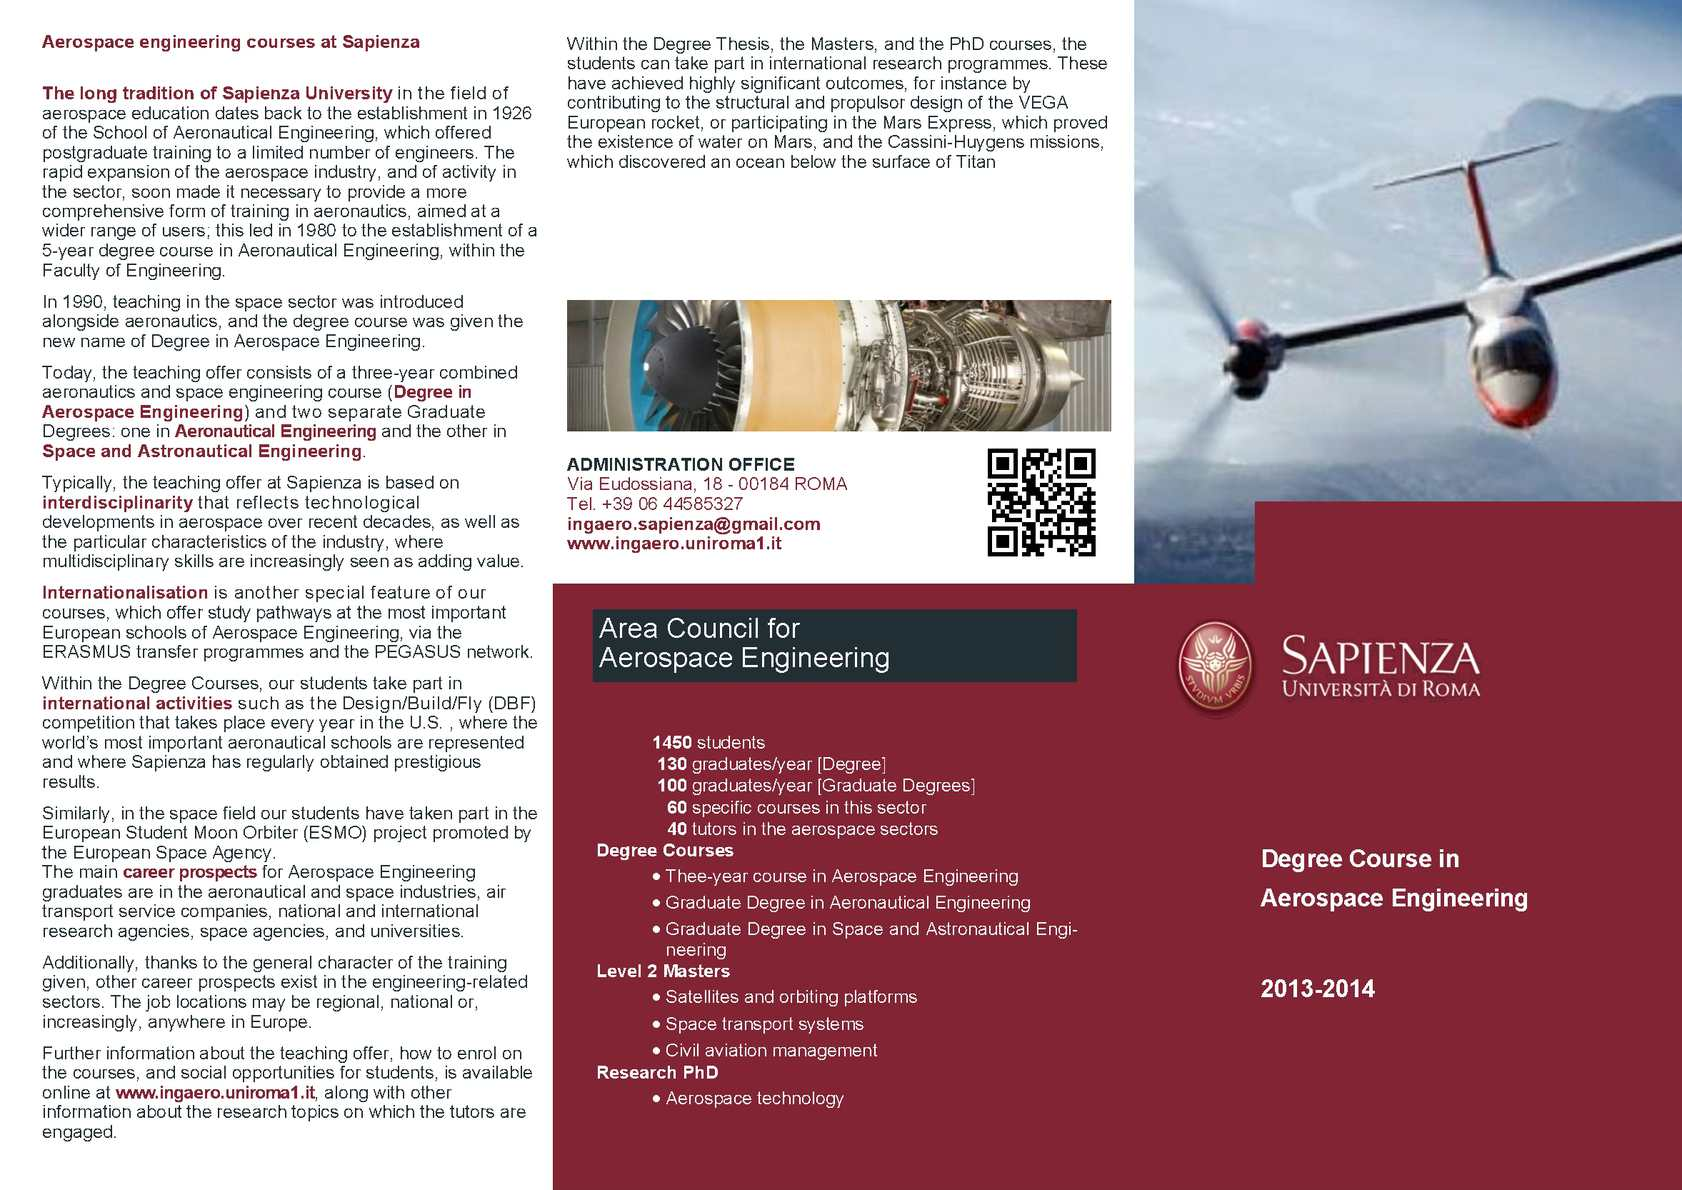 Calaméo - Degree Course in Aerospace Engineering